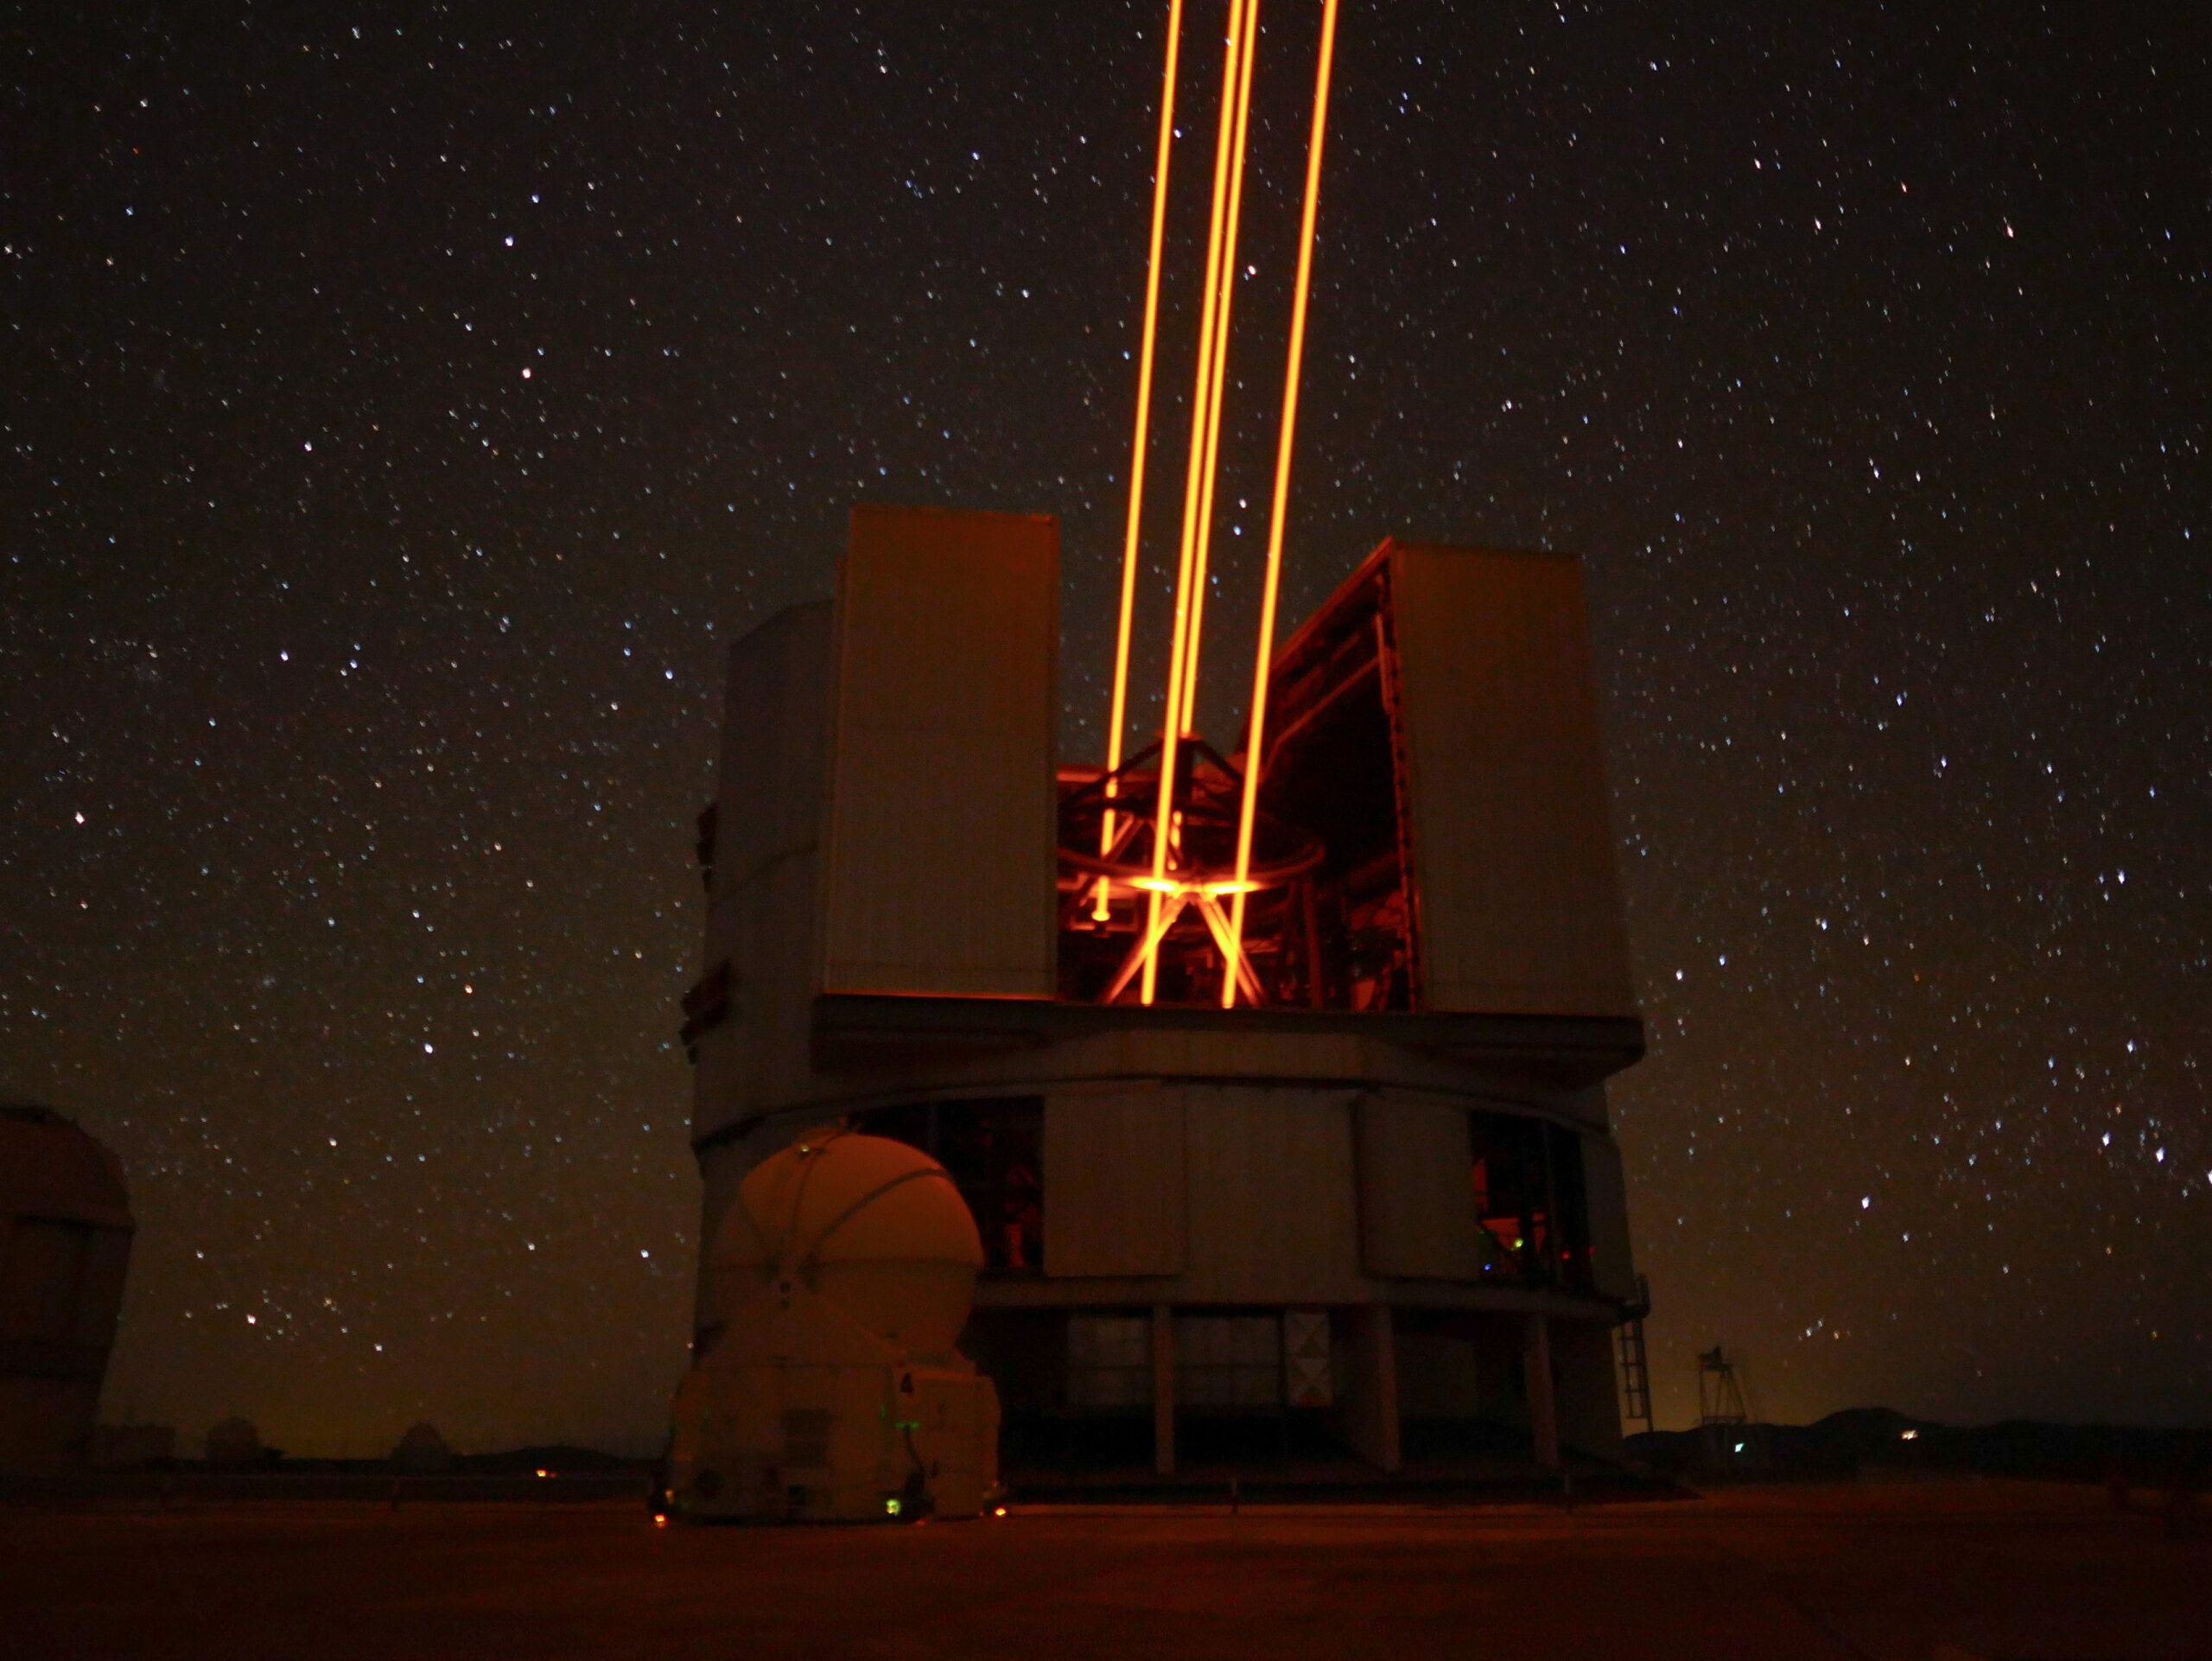 adaptive optics instrument at the Paranal observatory in Chile. Creating four artificial start with lasers. Phto credits: Dr. Johanna Hartke, a post-doctoral fellow at ESO.